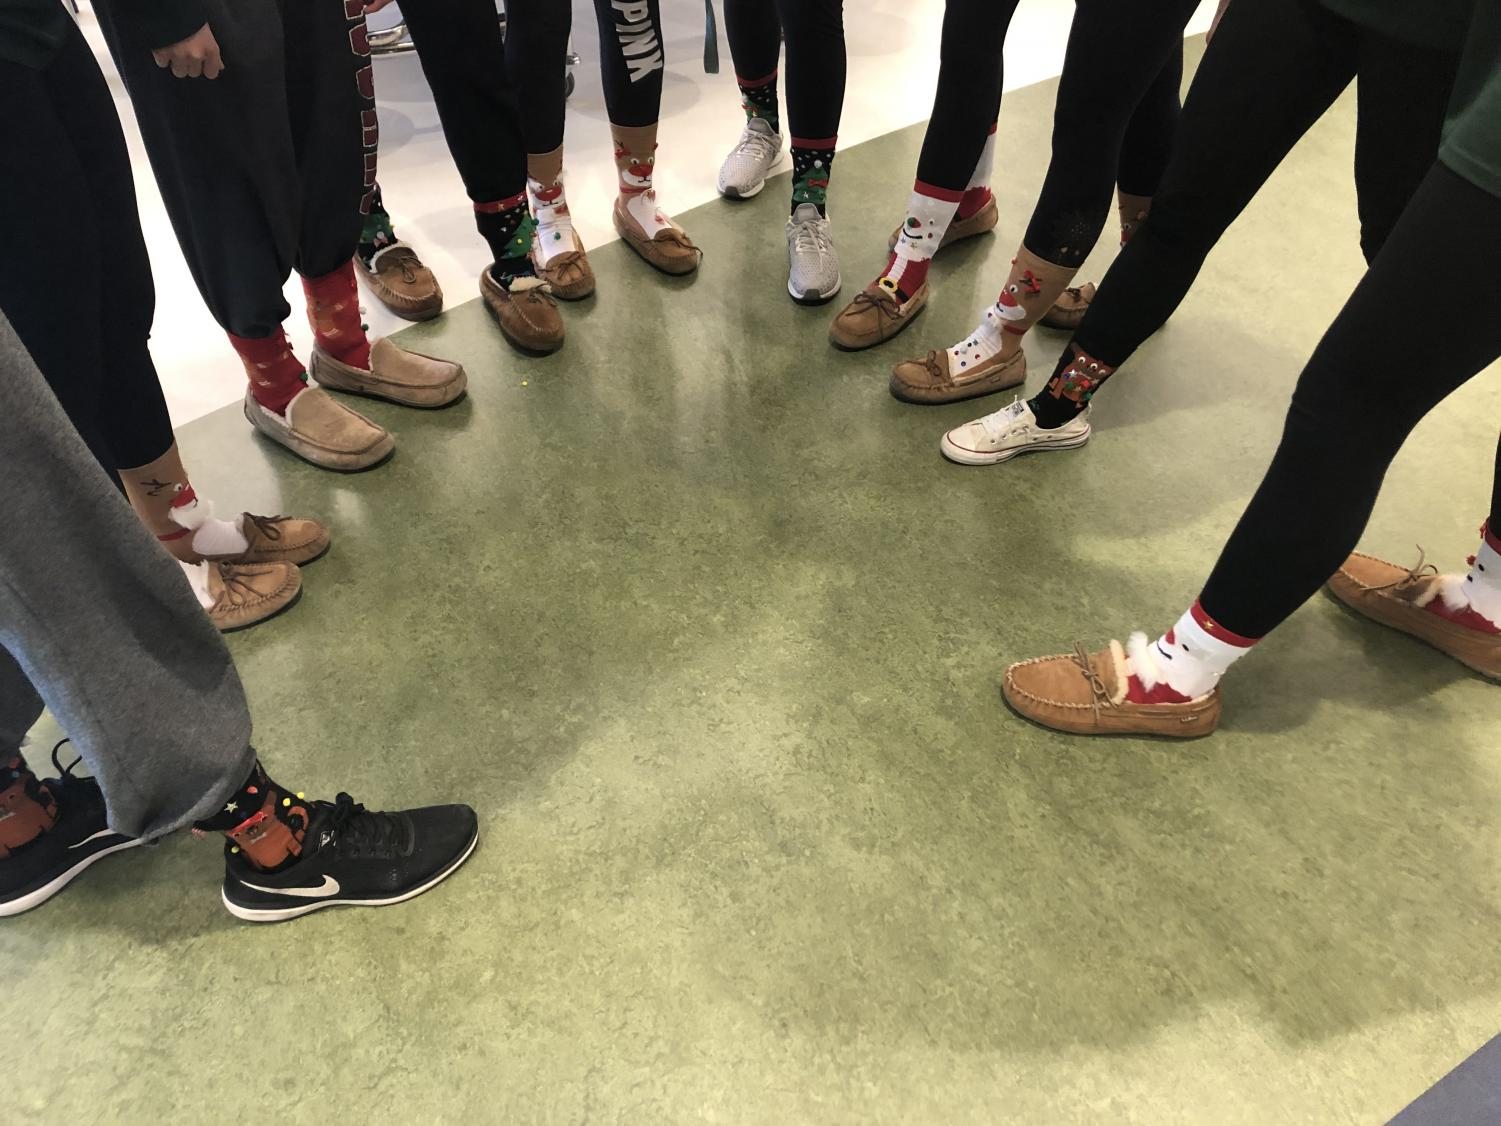 To kick off the first day of their winter season, AHS Girls Varsity Basketball Team all wore ugly socks to school on Dec. 11.